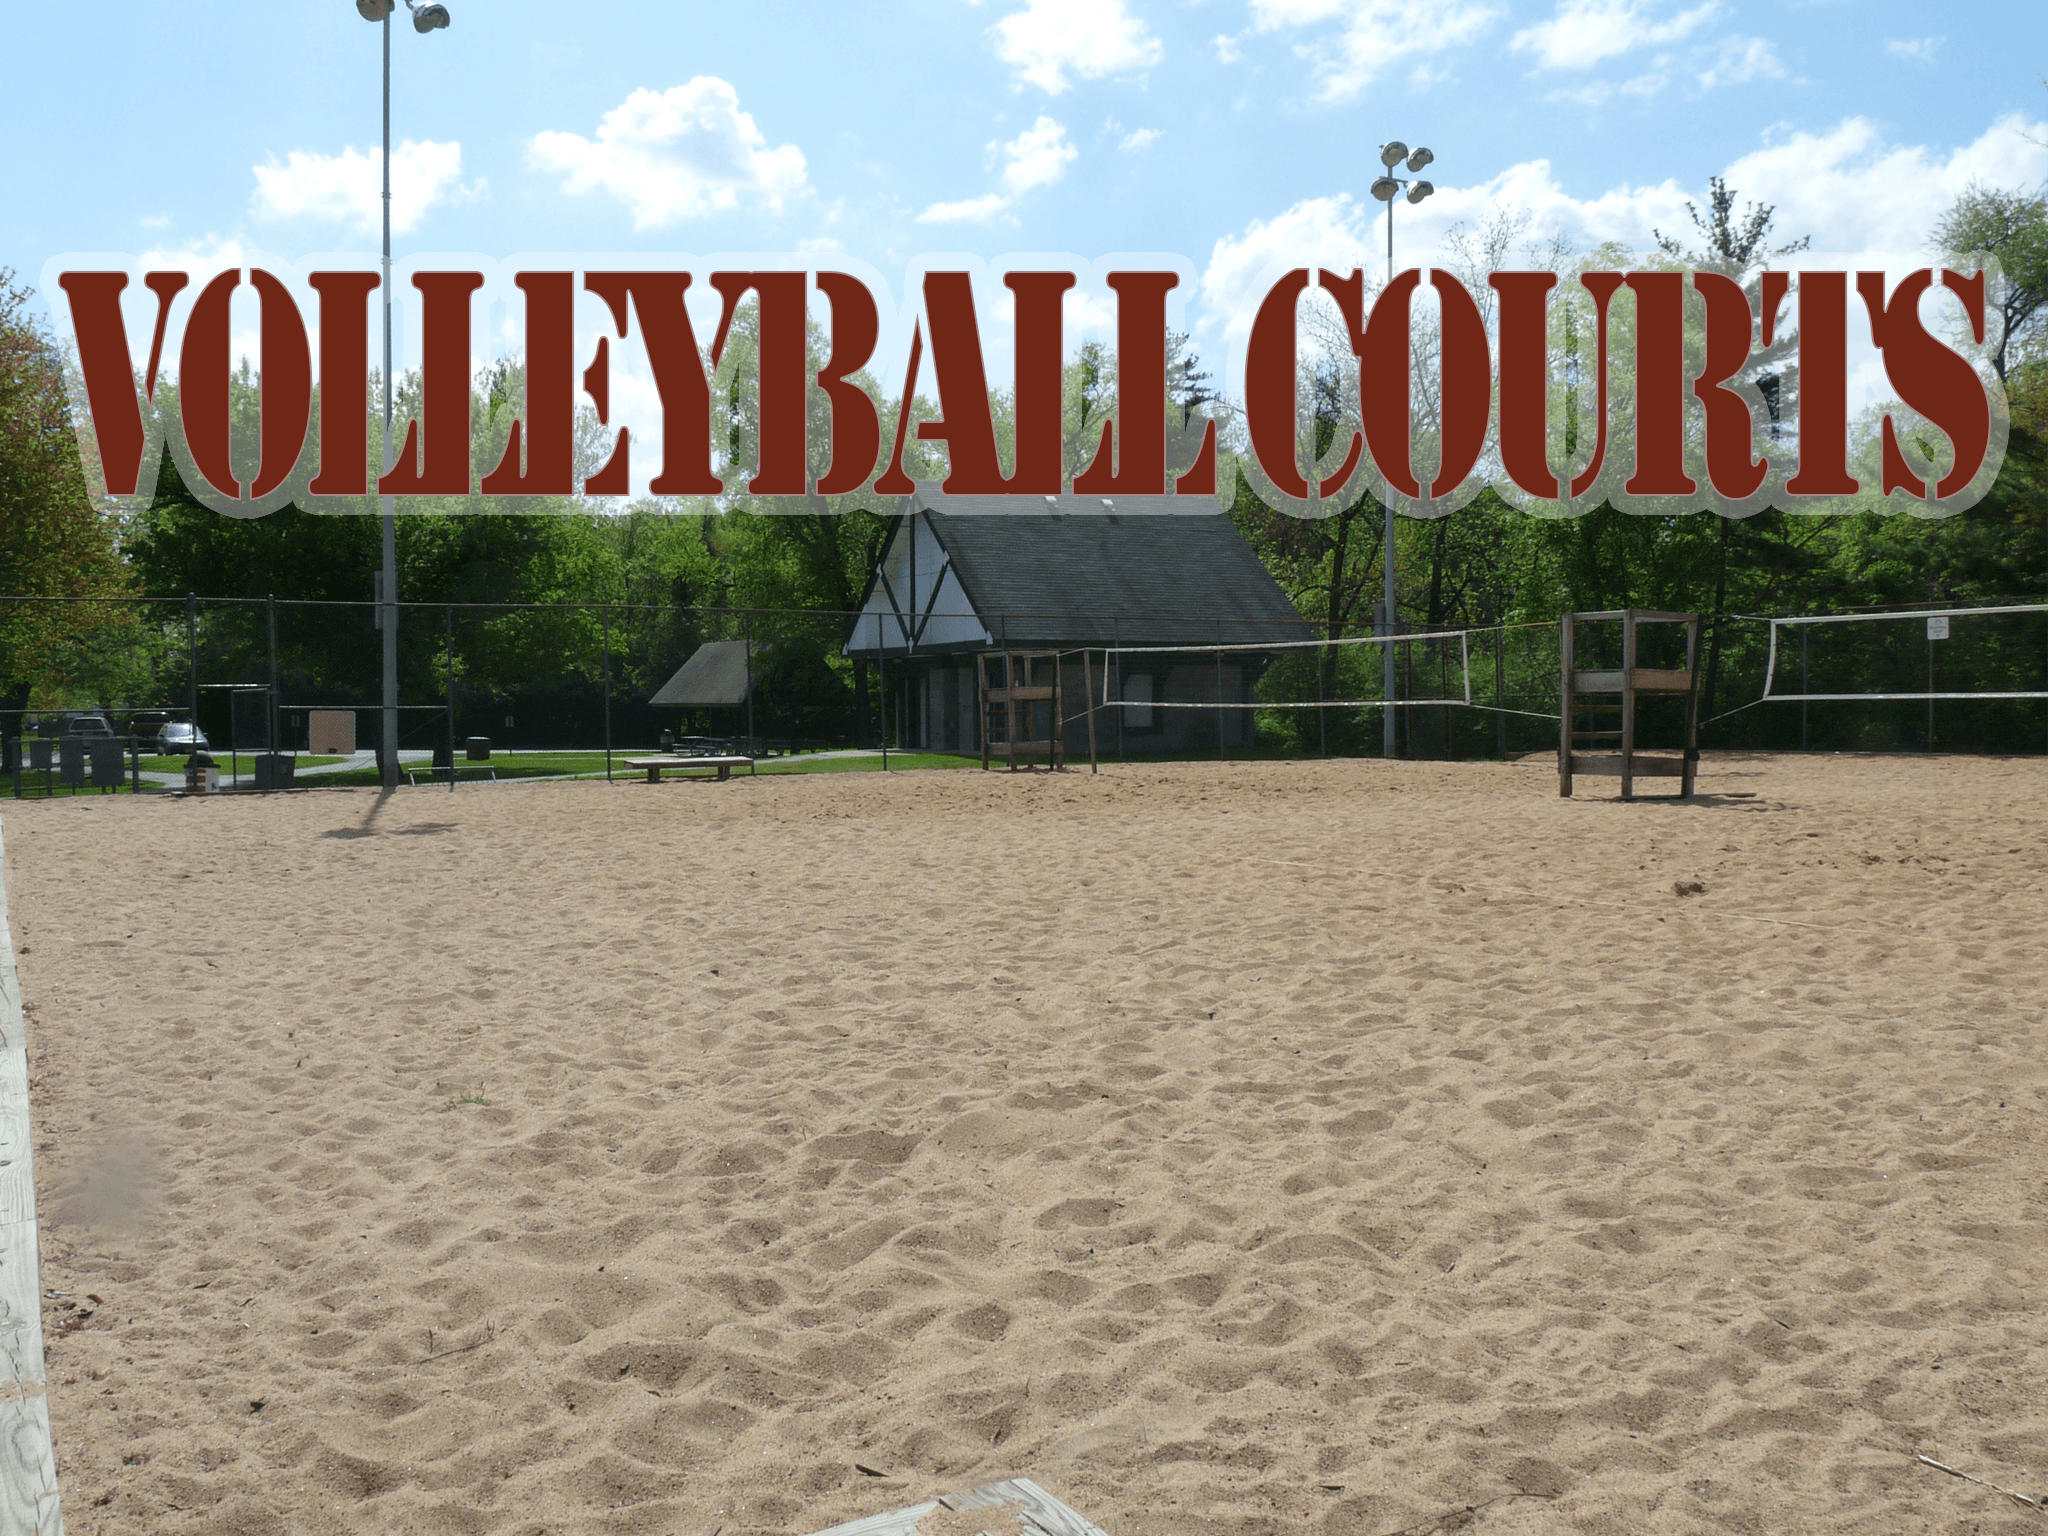 VolleyballCourtGraphic